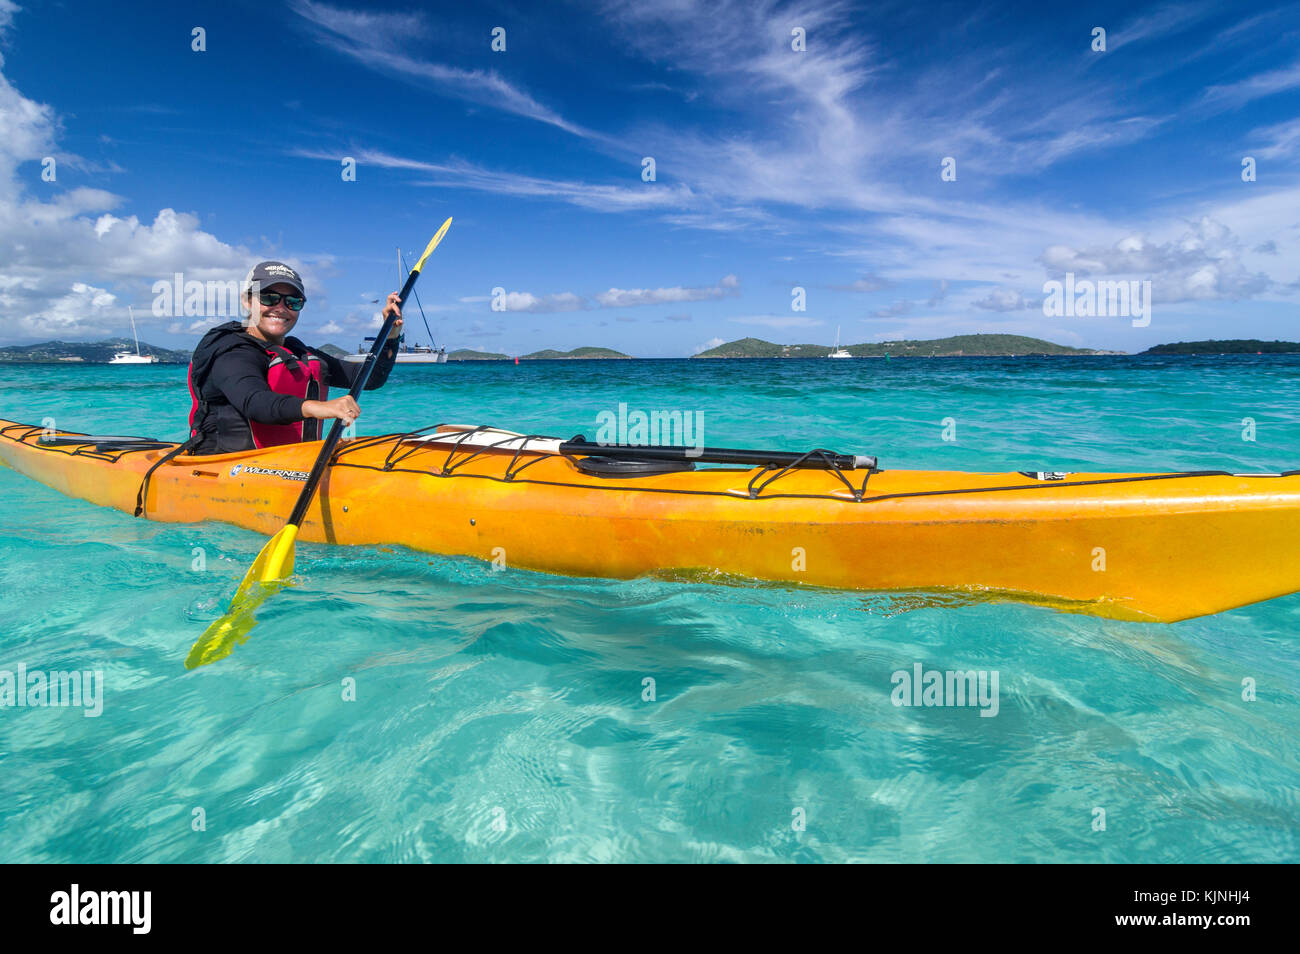 Kayaking off Honeymoon Beach - Stock Image